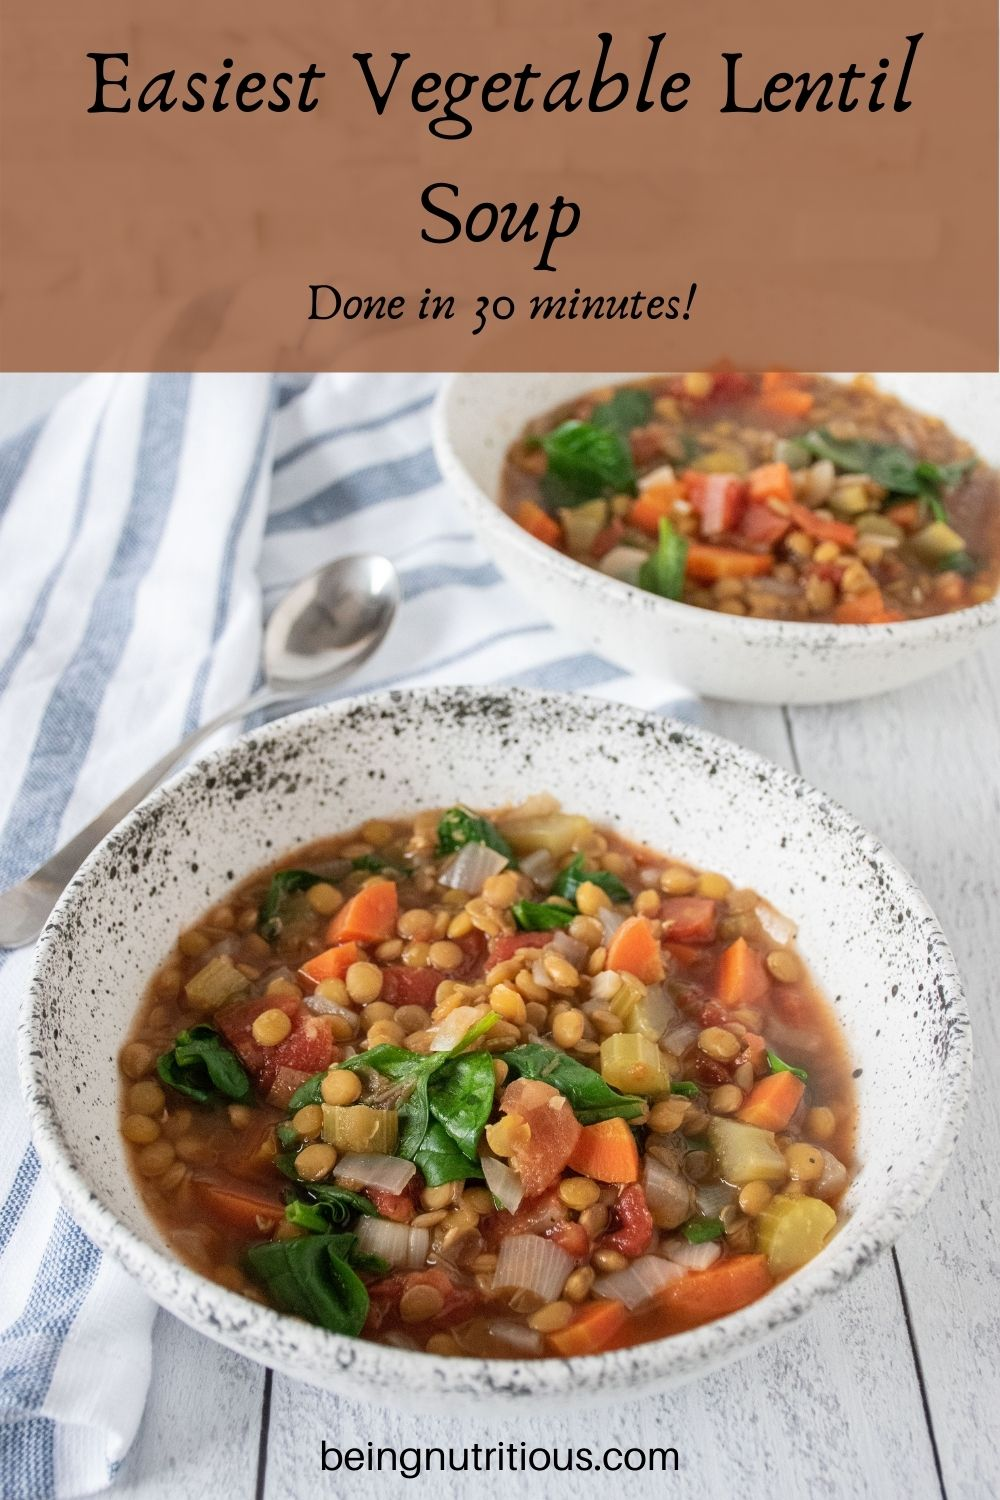 Lentil soup in a bowl. Text overlay: Easiest Vegetable Lentil soup; done in 30 minutes!